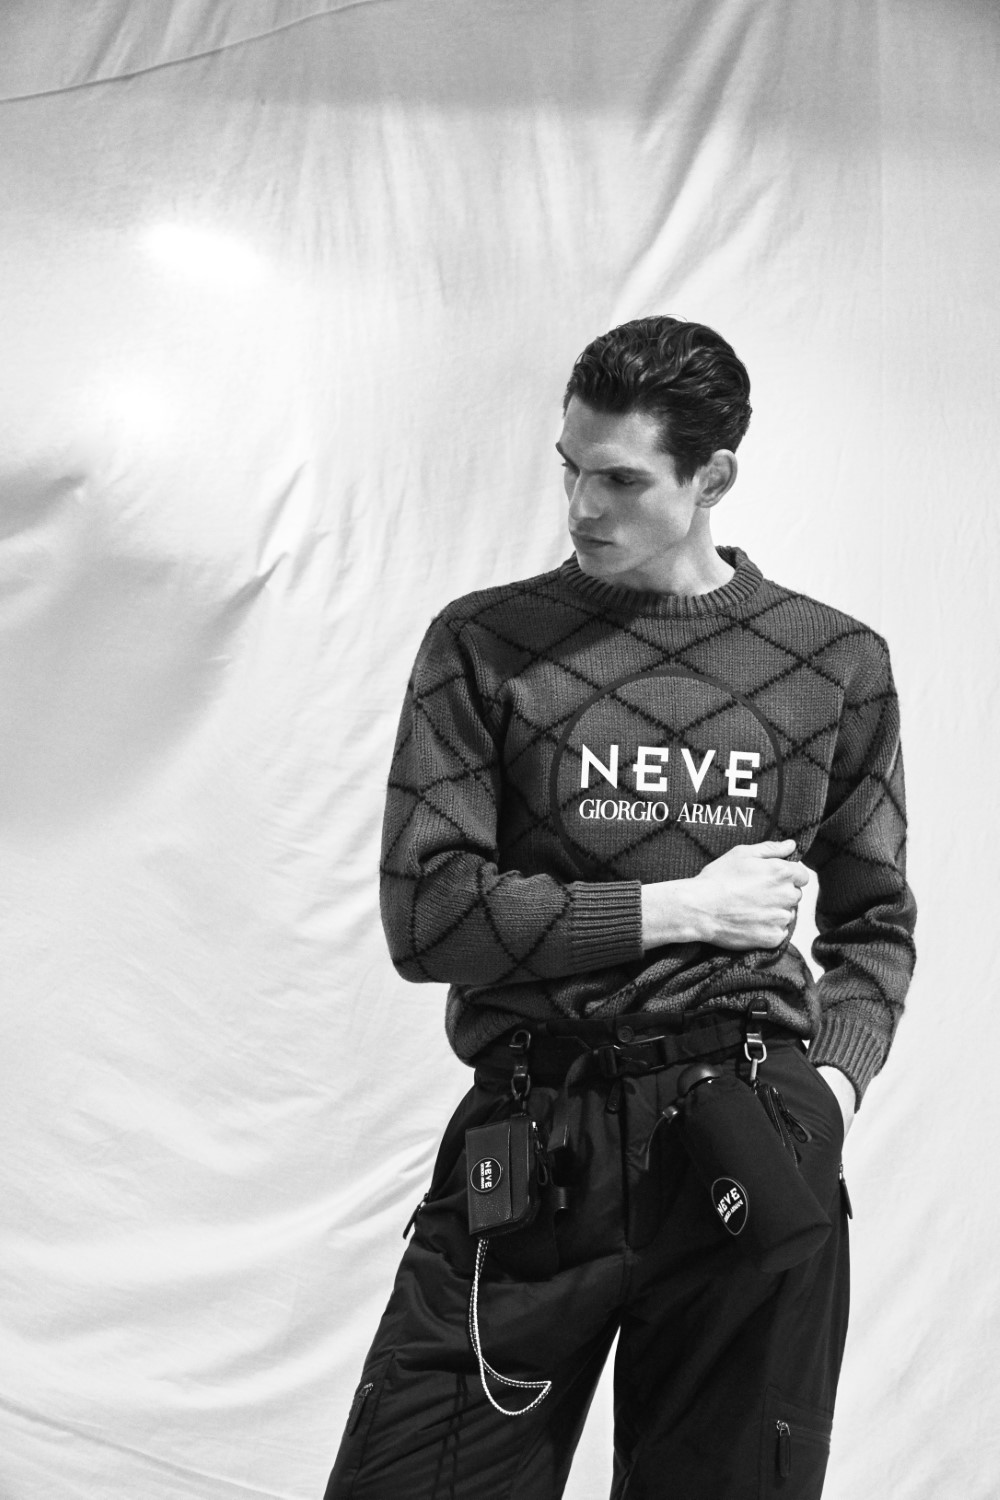 Giorgio Armani Neve Fall-Winter 2020 Lookbook